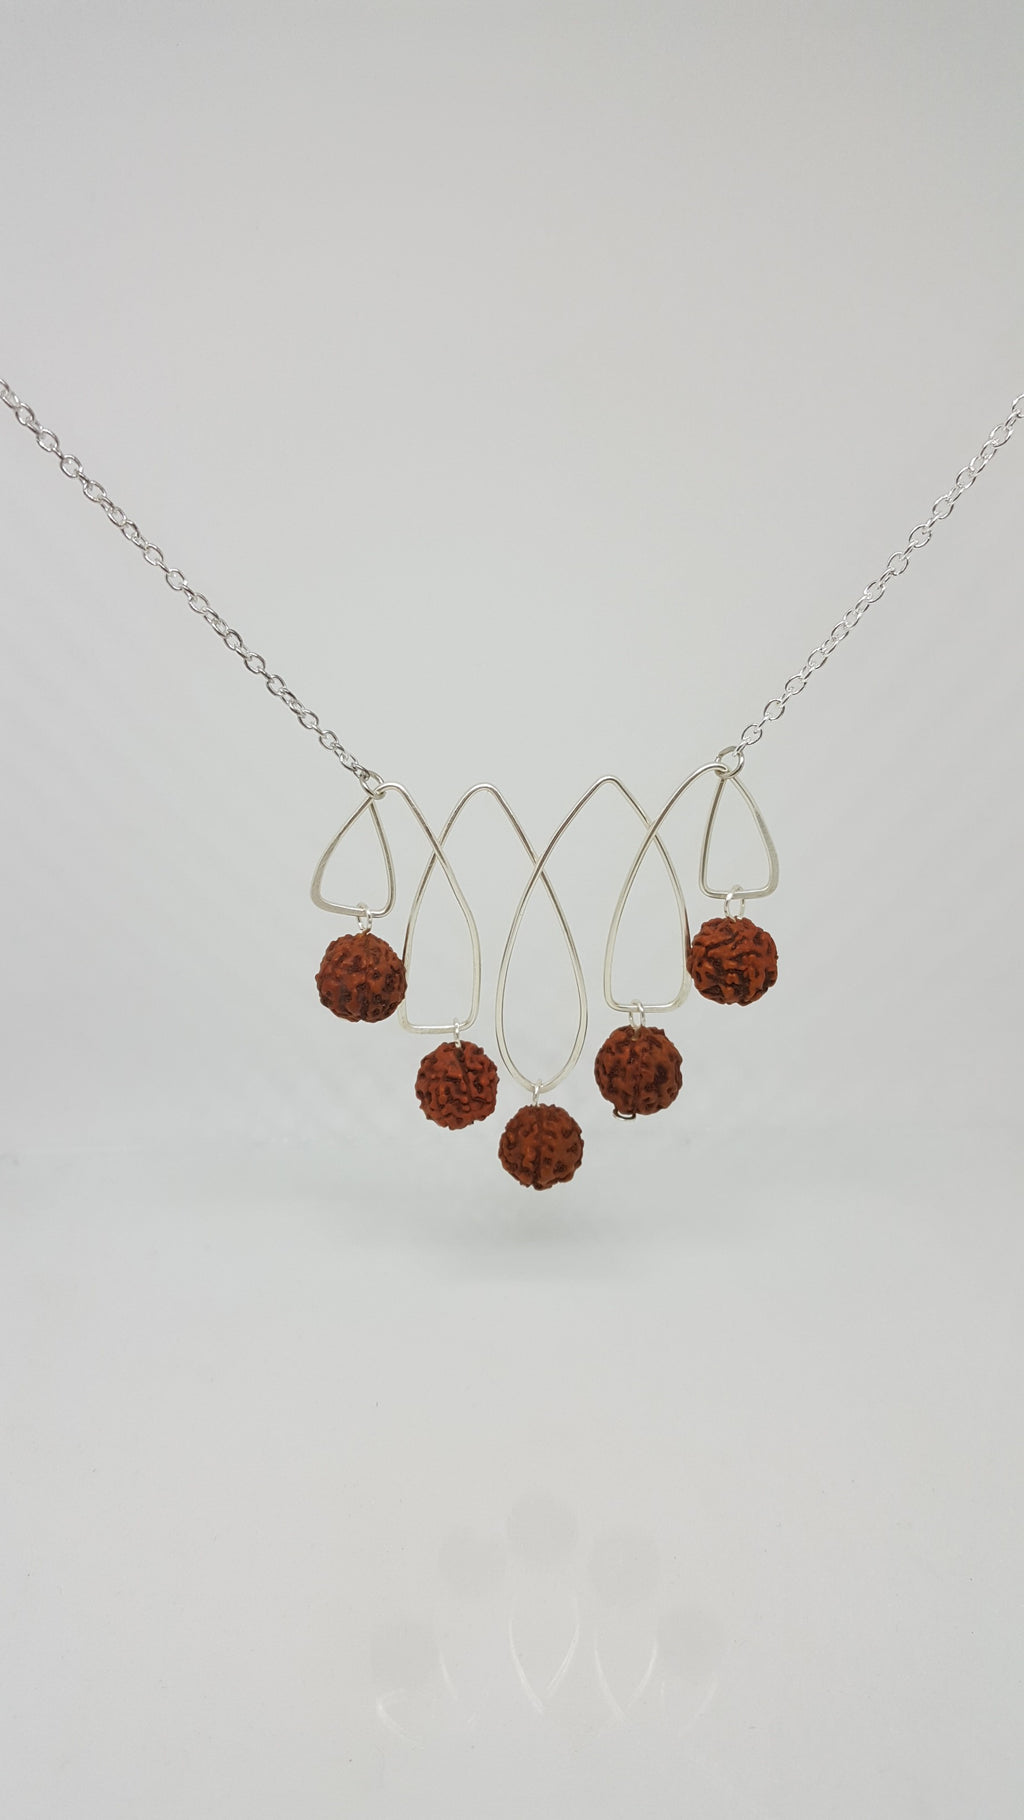 Rosewood bead necklace